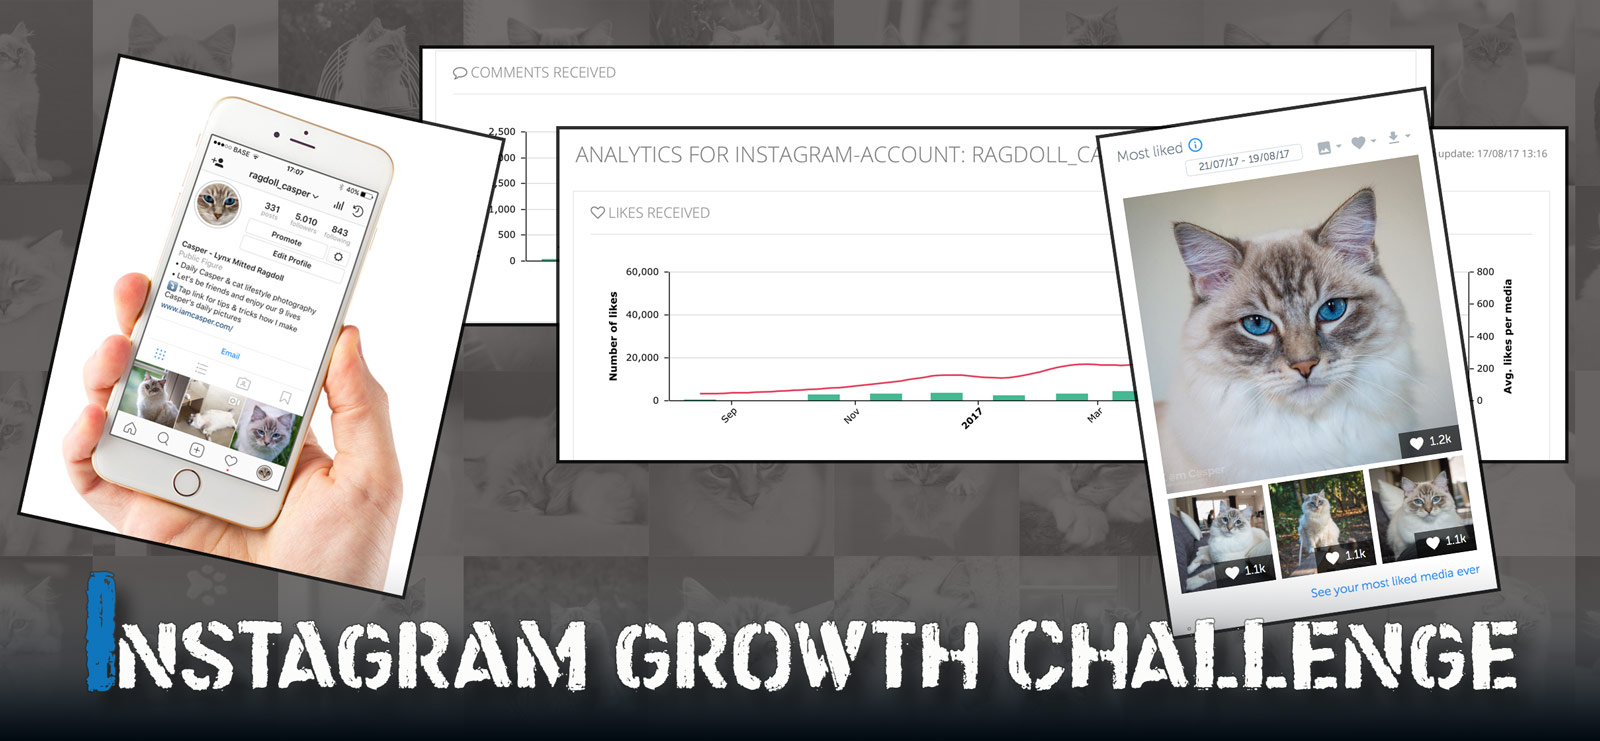 graph of the evolution of Casper ragdoll quantity or number of followers on Instagram growth challenge road to being famous